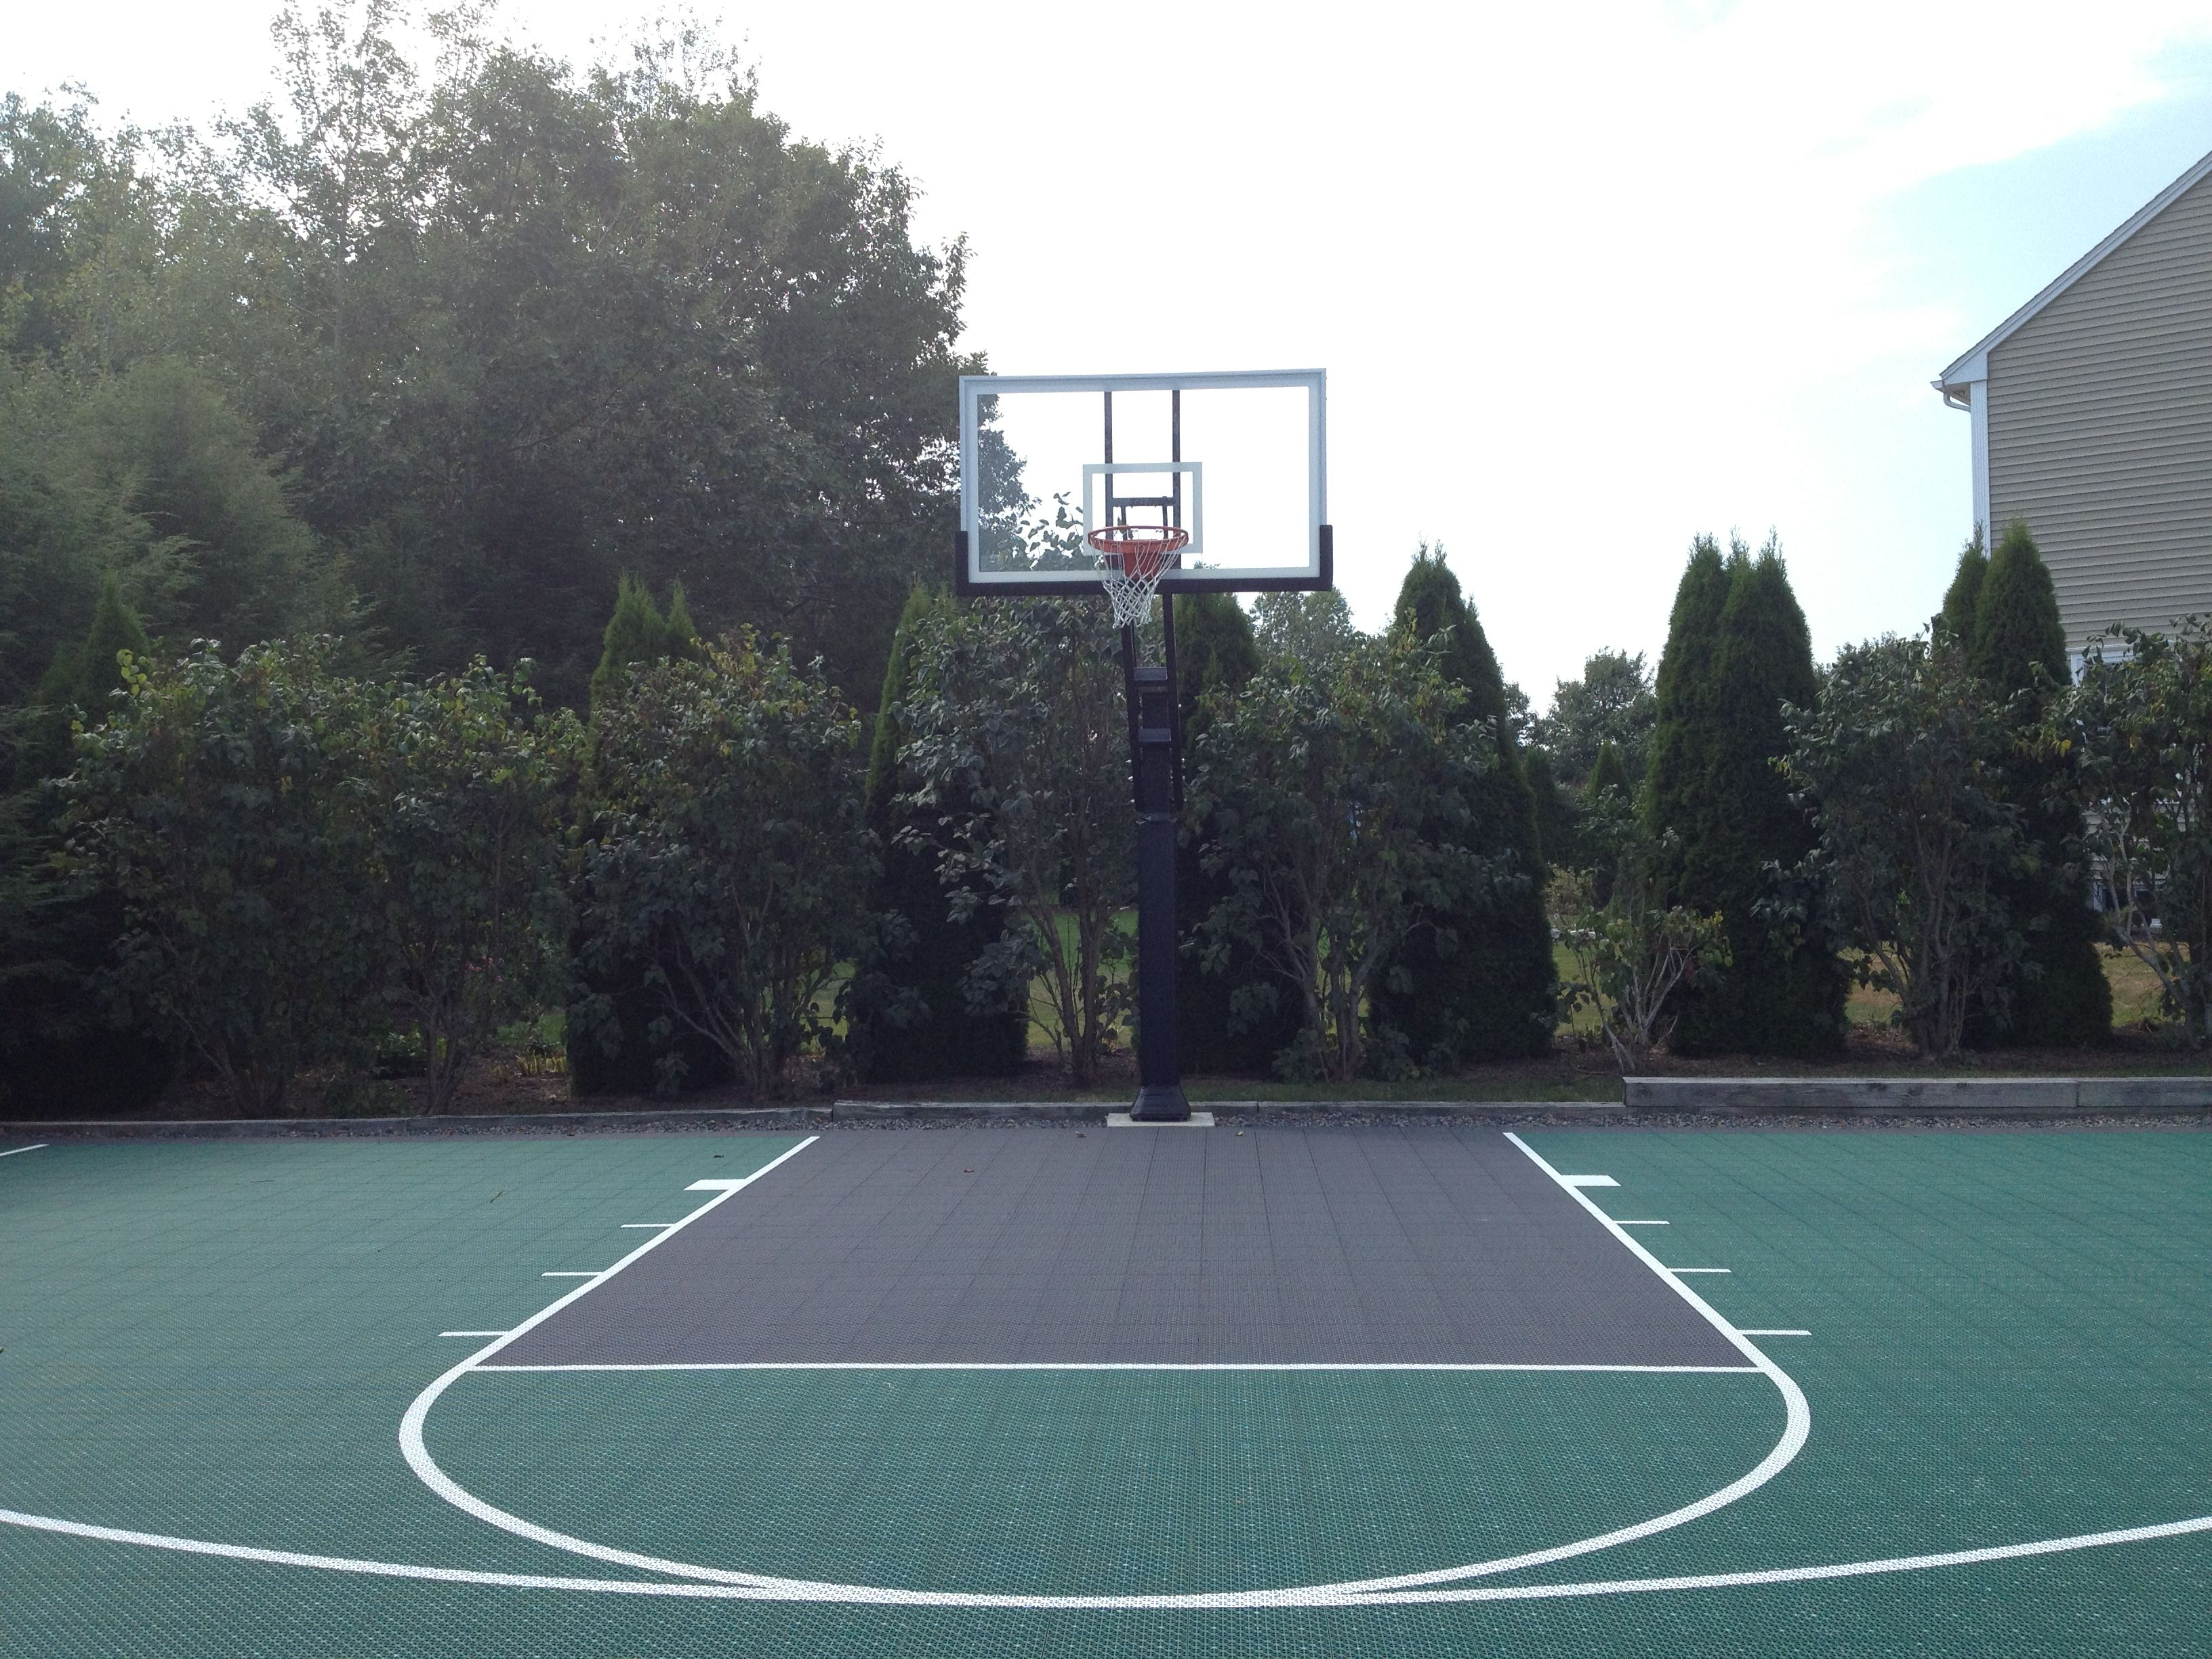 pro dunk diamond basketball system looks amazing on this fine court